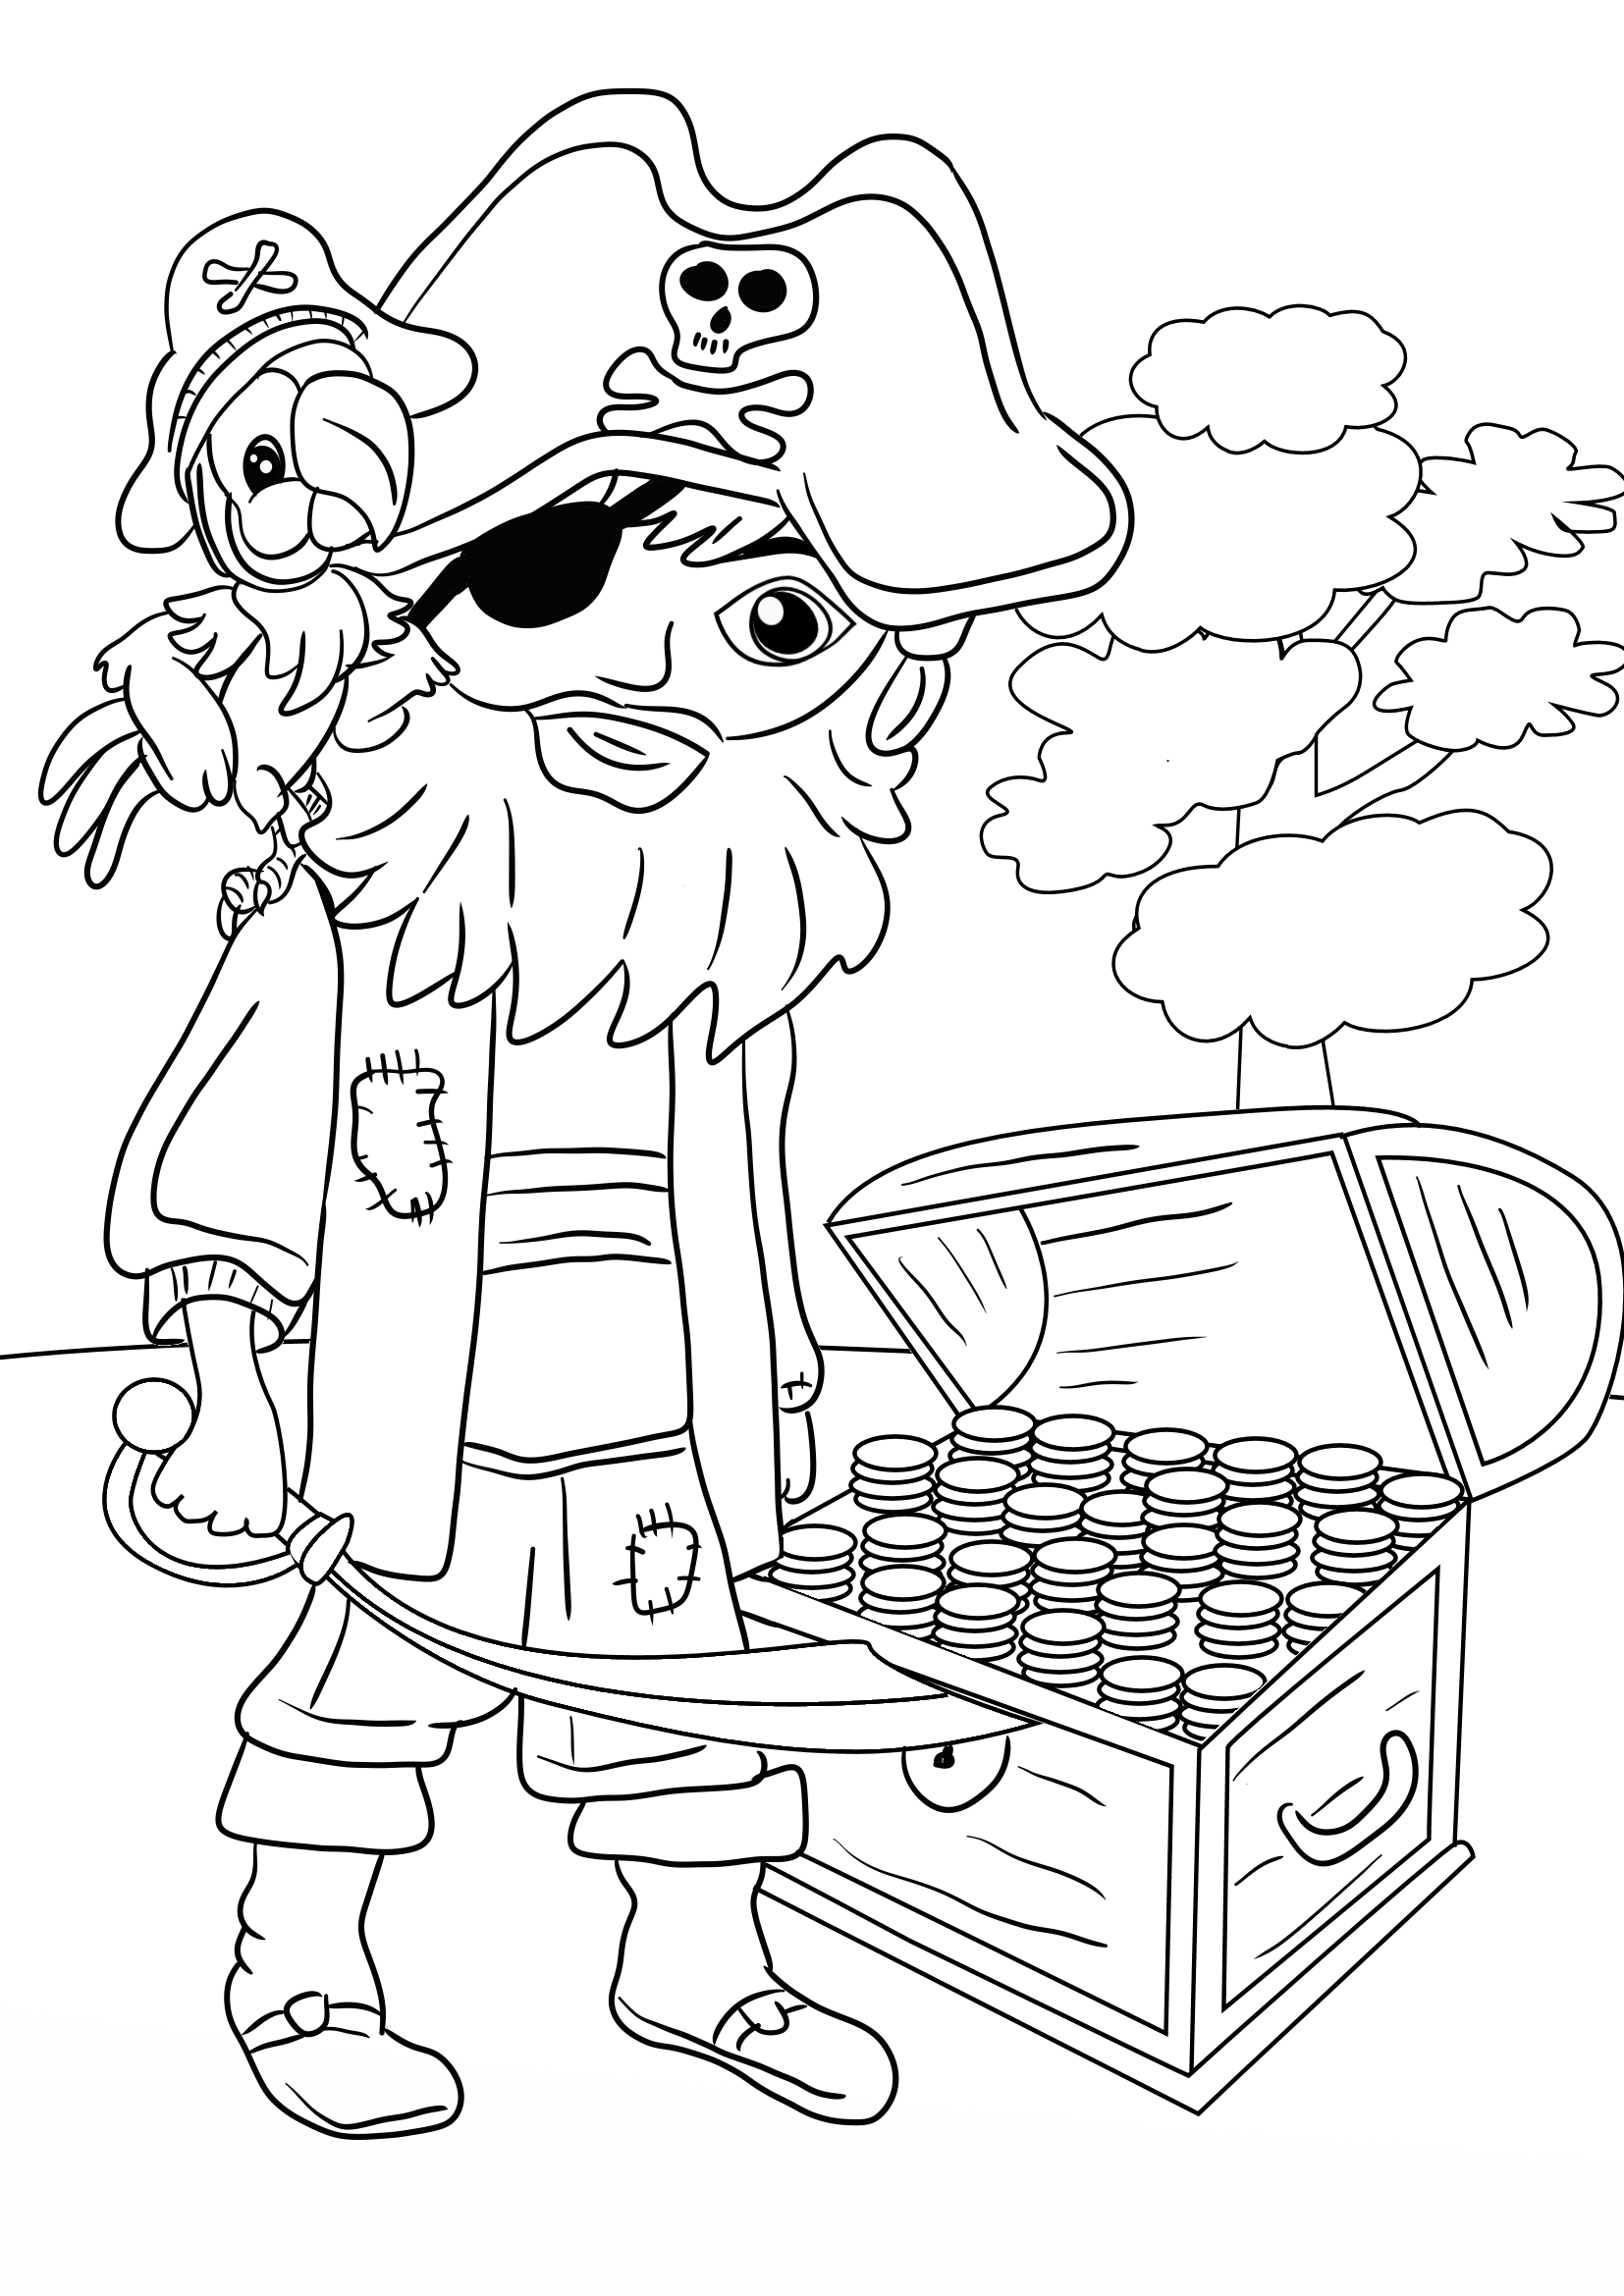 pirate coloring pages pirate coloring pages coloring pirate pages